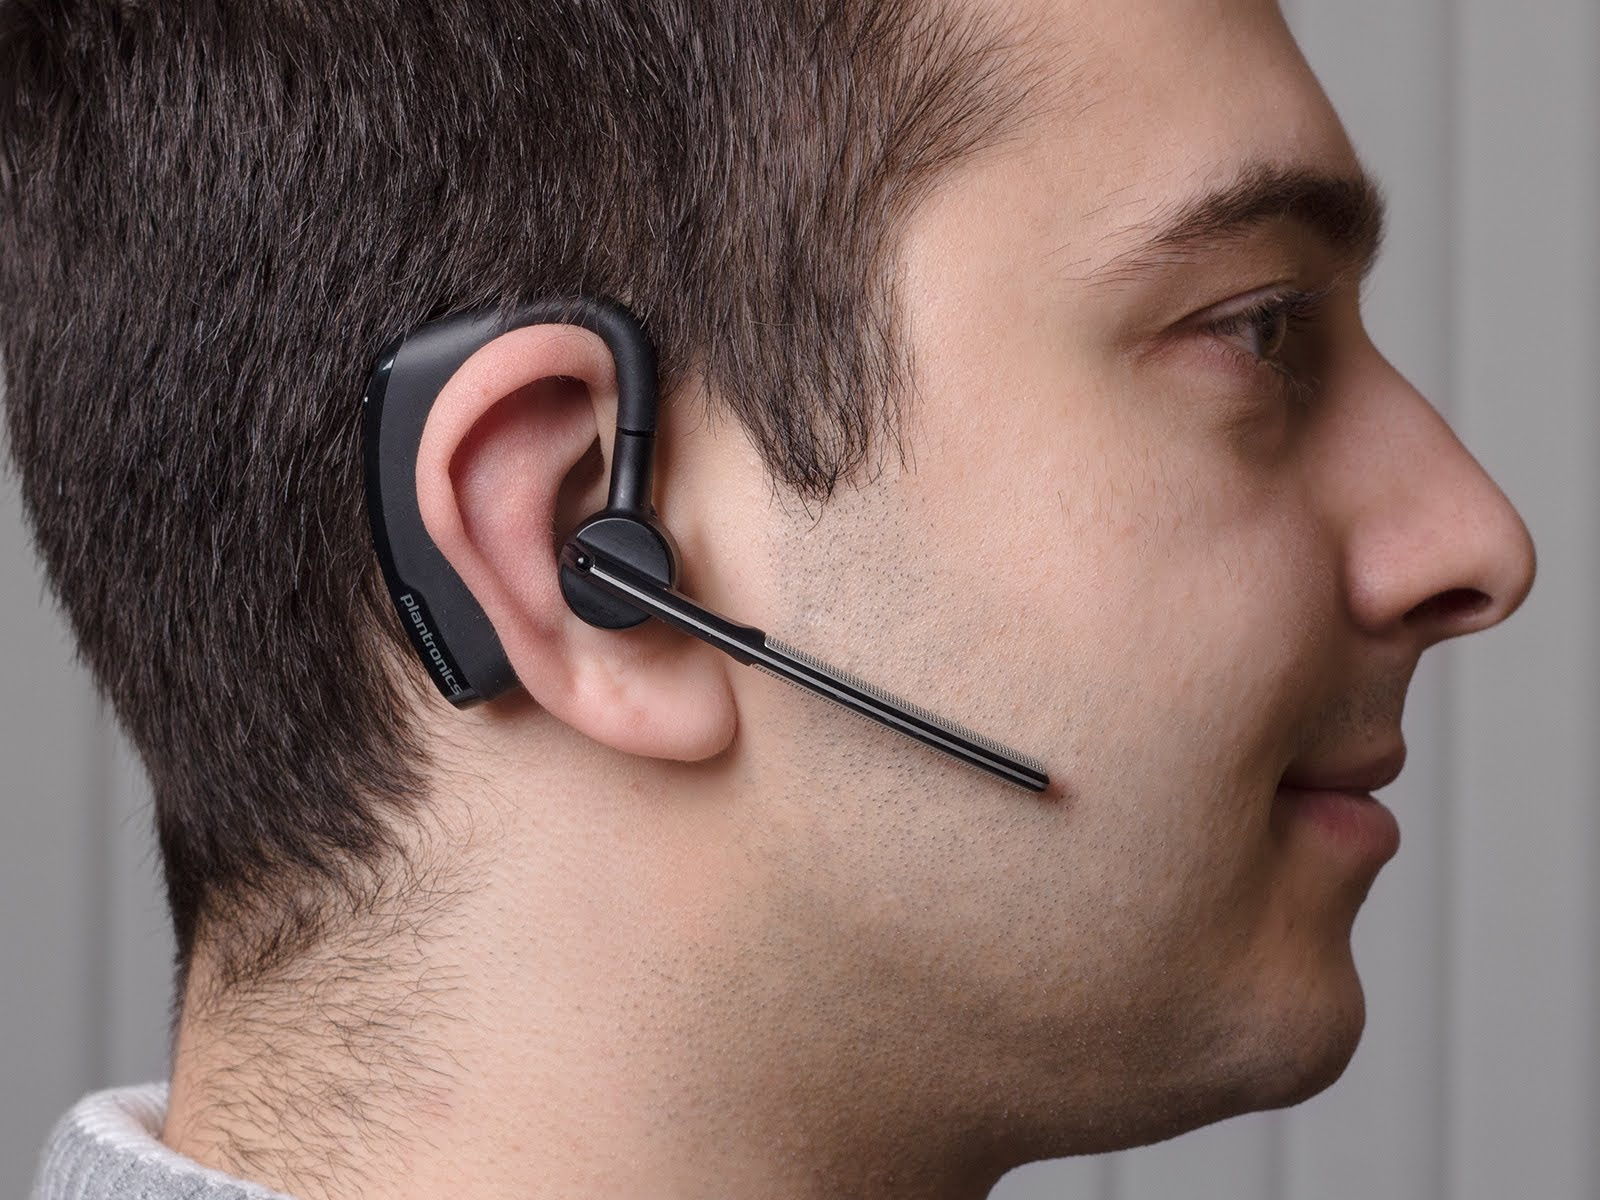 bluetooth headset douche